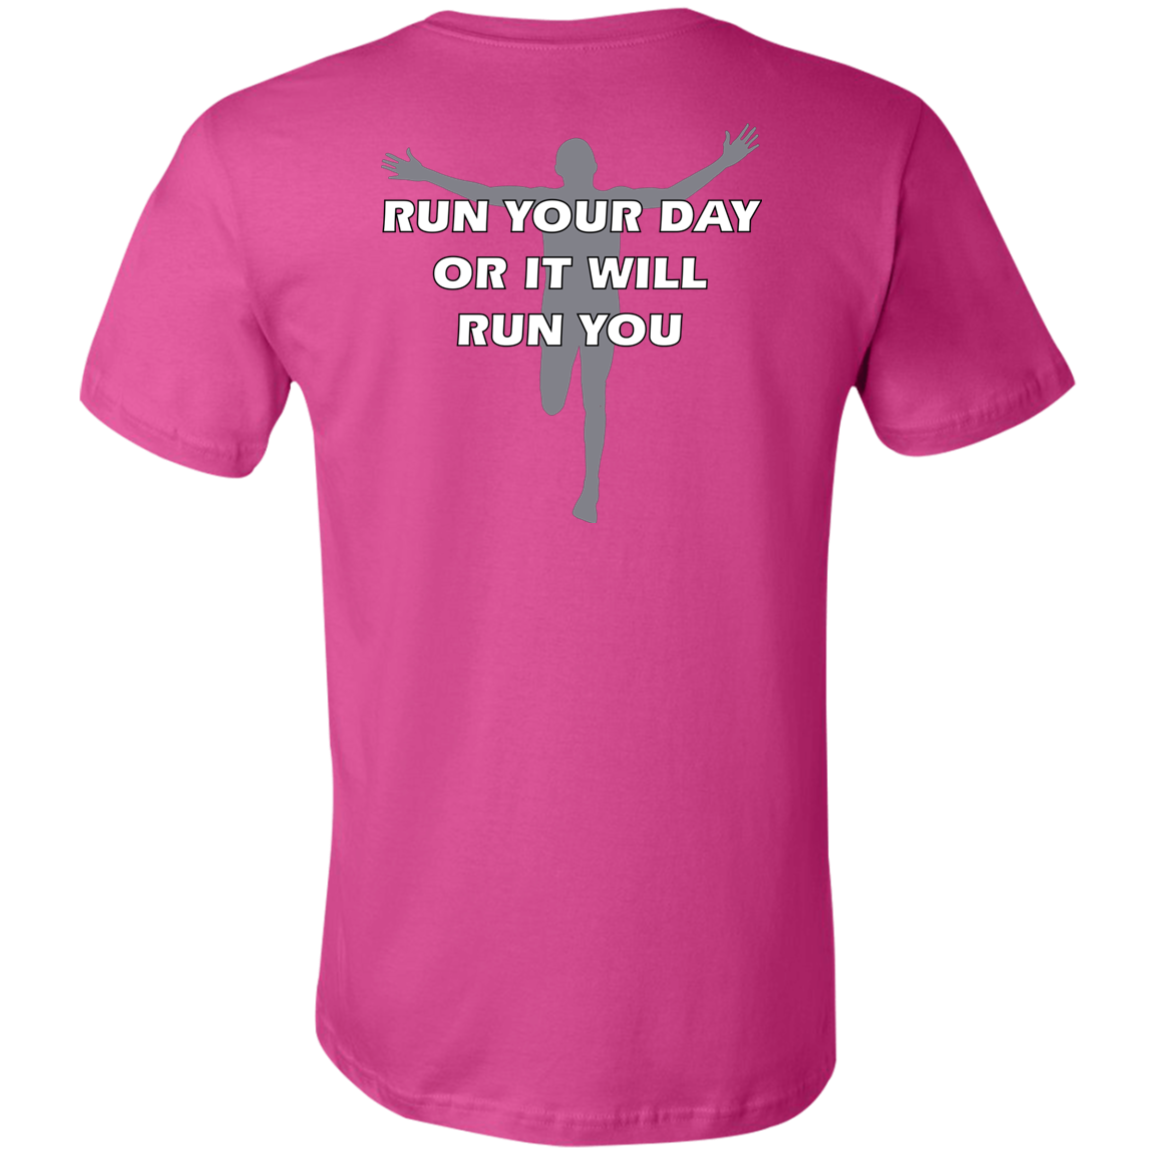 Living Large - The Blissful Bella Run Your Day Runners Motivational T-Shirt